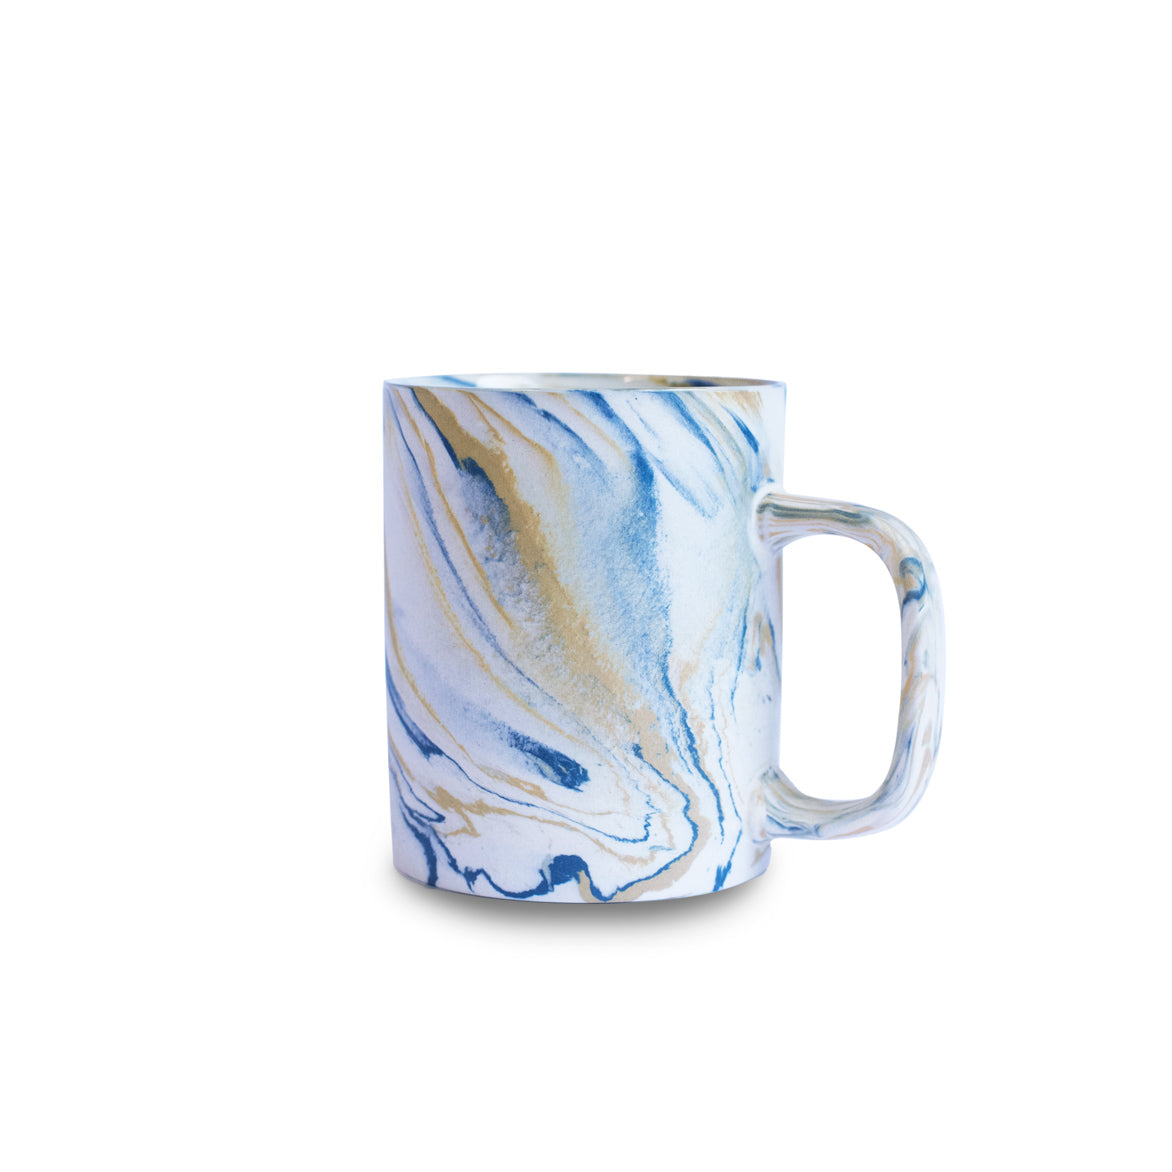 Marble Mustard Yellow & Blue Mug